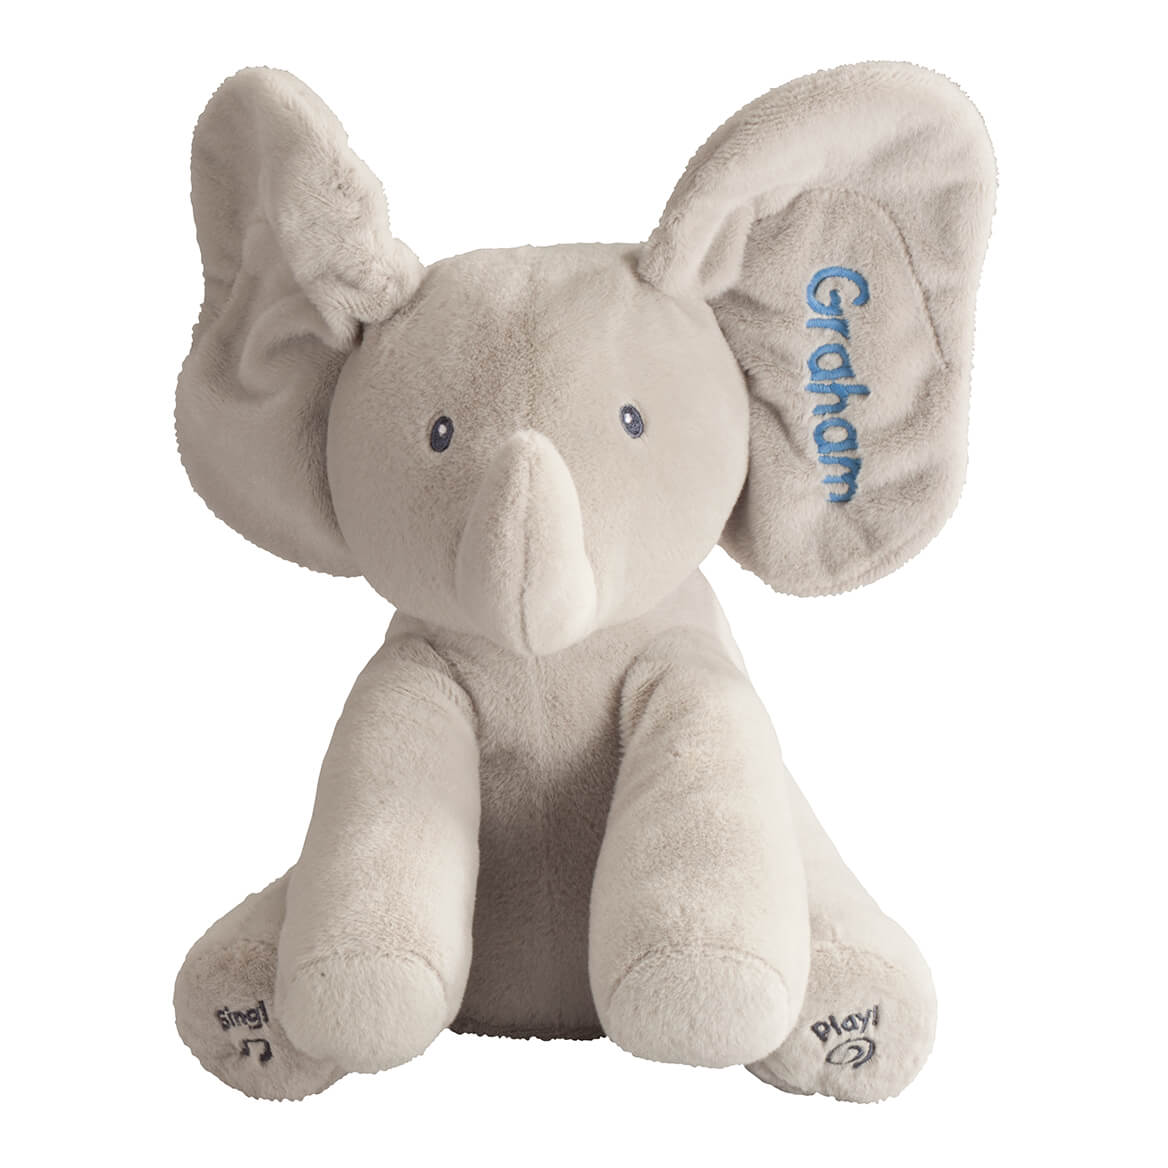 aa580029dda Personalized Flappy Singing Elephant - Peek A Boo Elephant - Miles ...